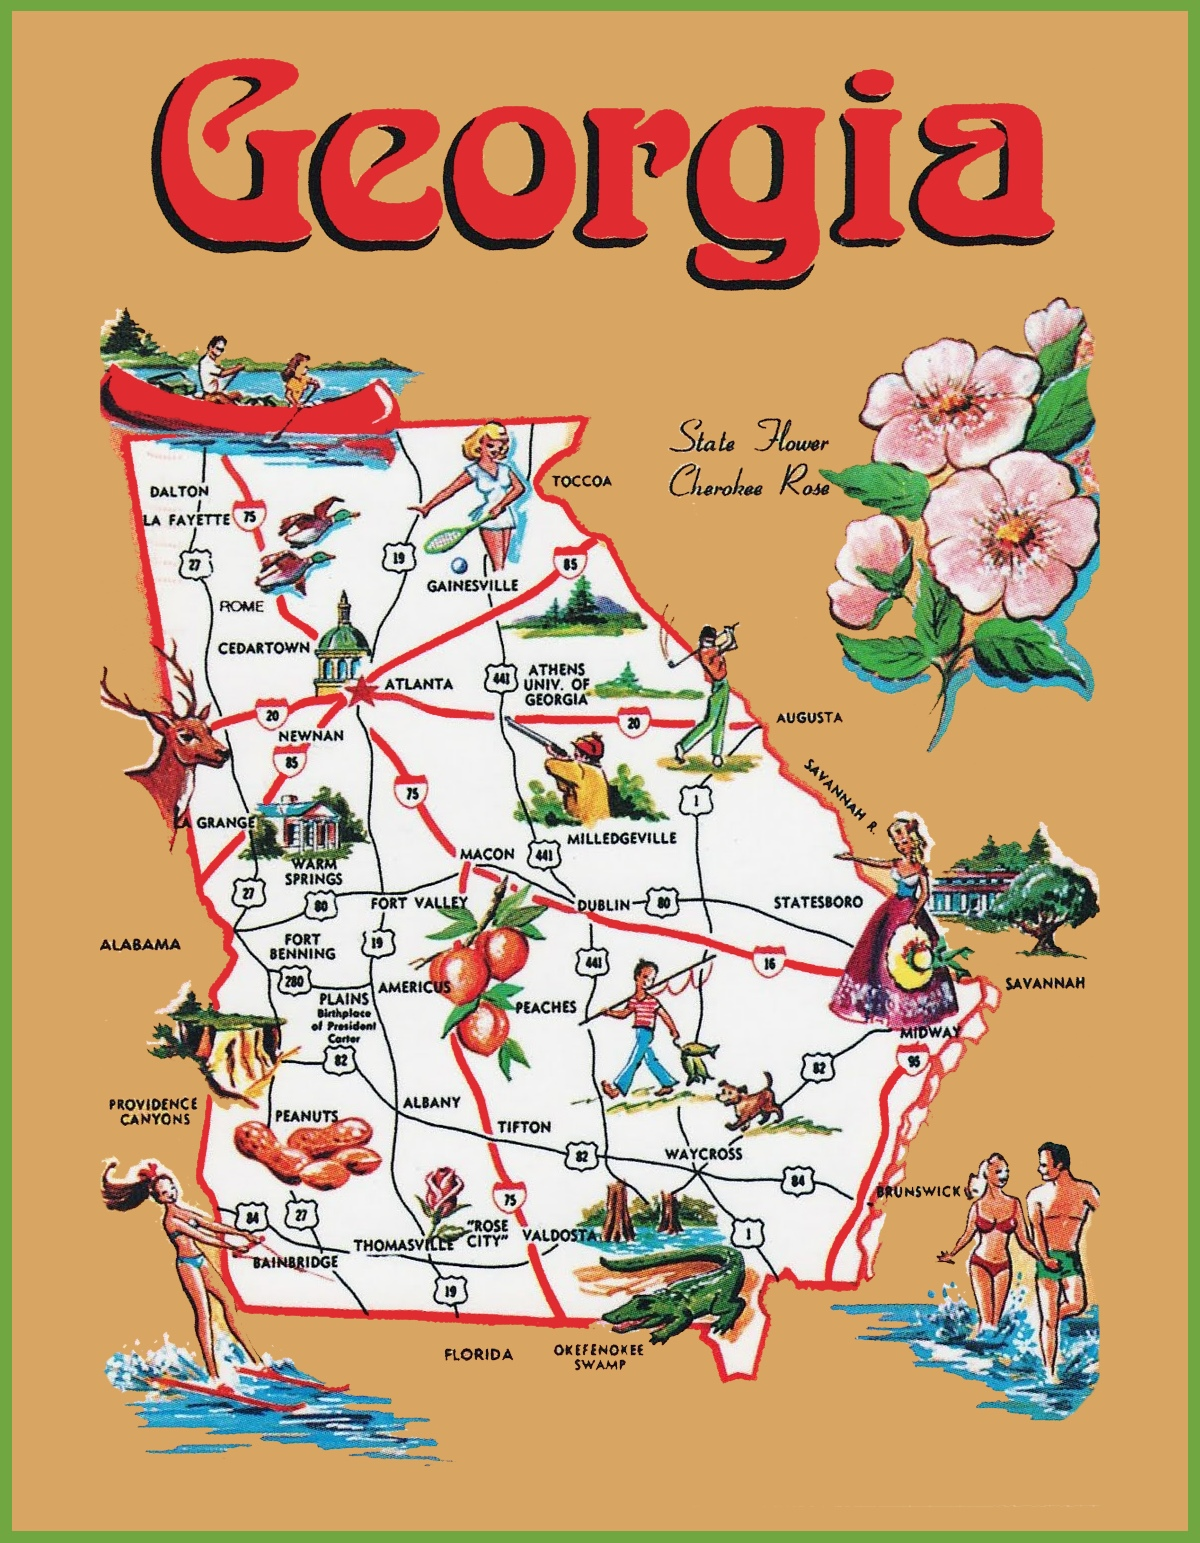 Georgia State Maps USA Maps Of Georgia GA - Map georgia usa